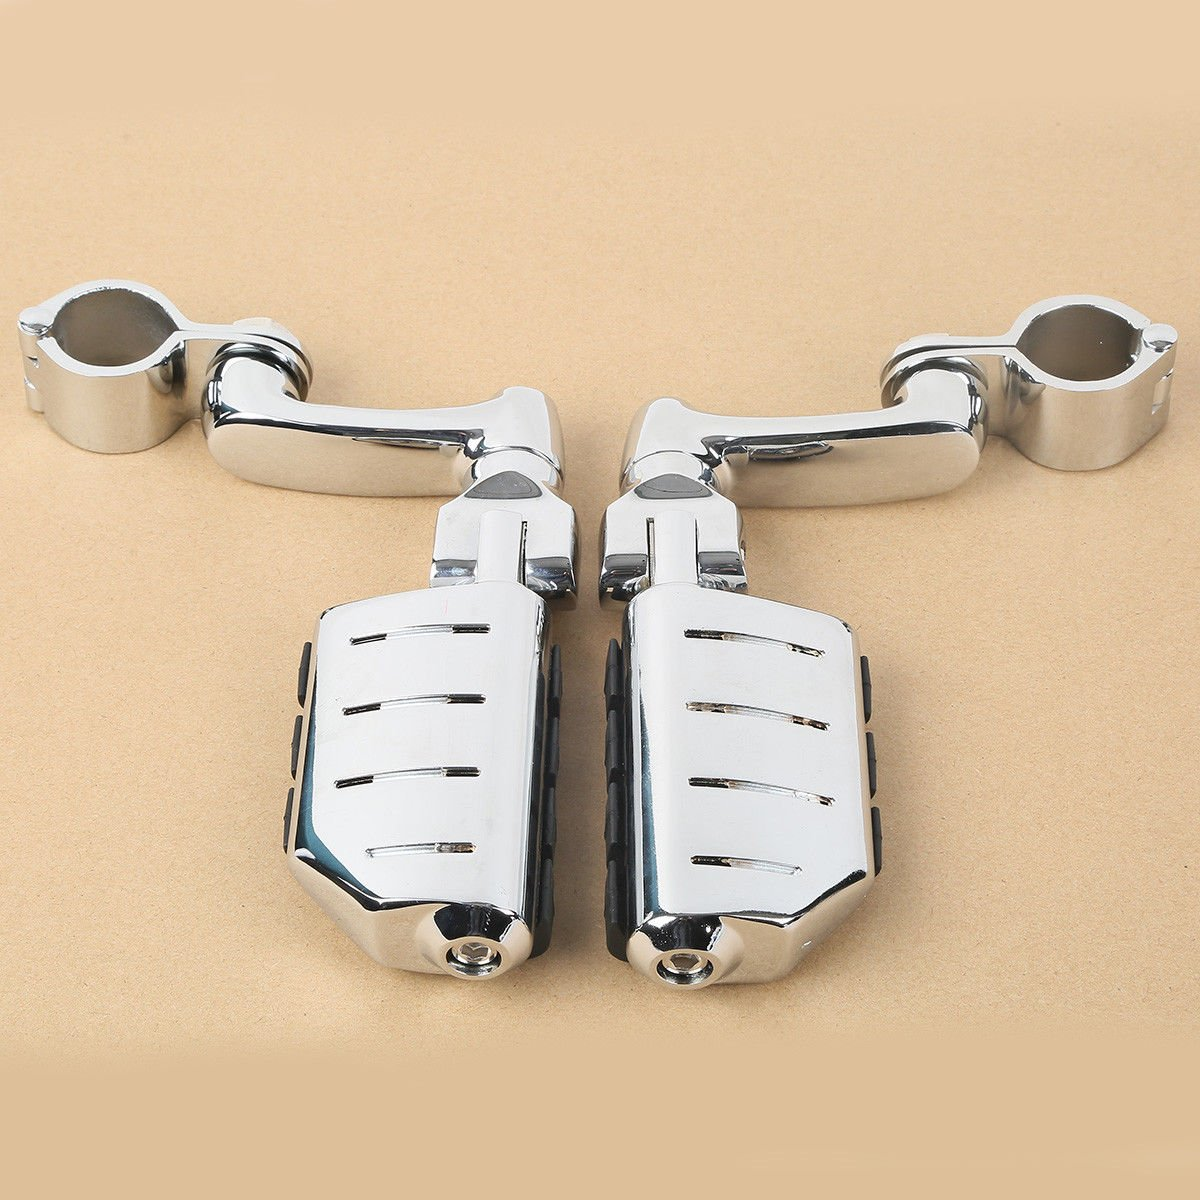 TCMT Universal Highway Foot Pegs Mount Fits For 32MM 1-1//4 Engine Guard Crash Bars